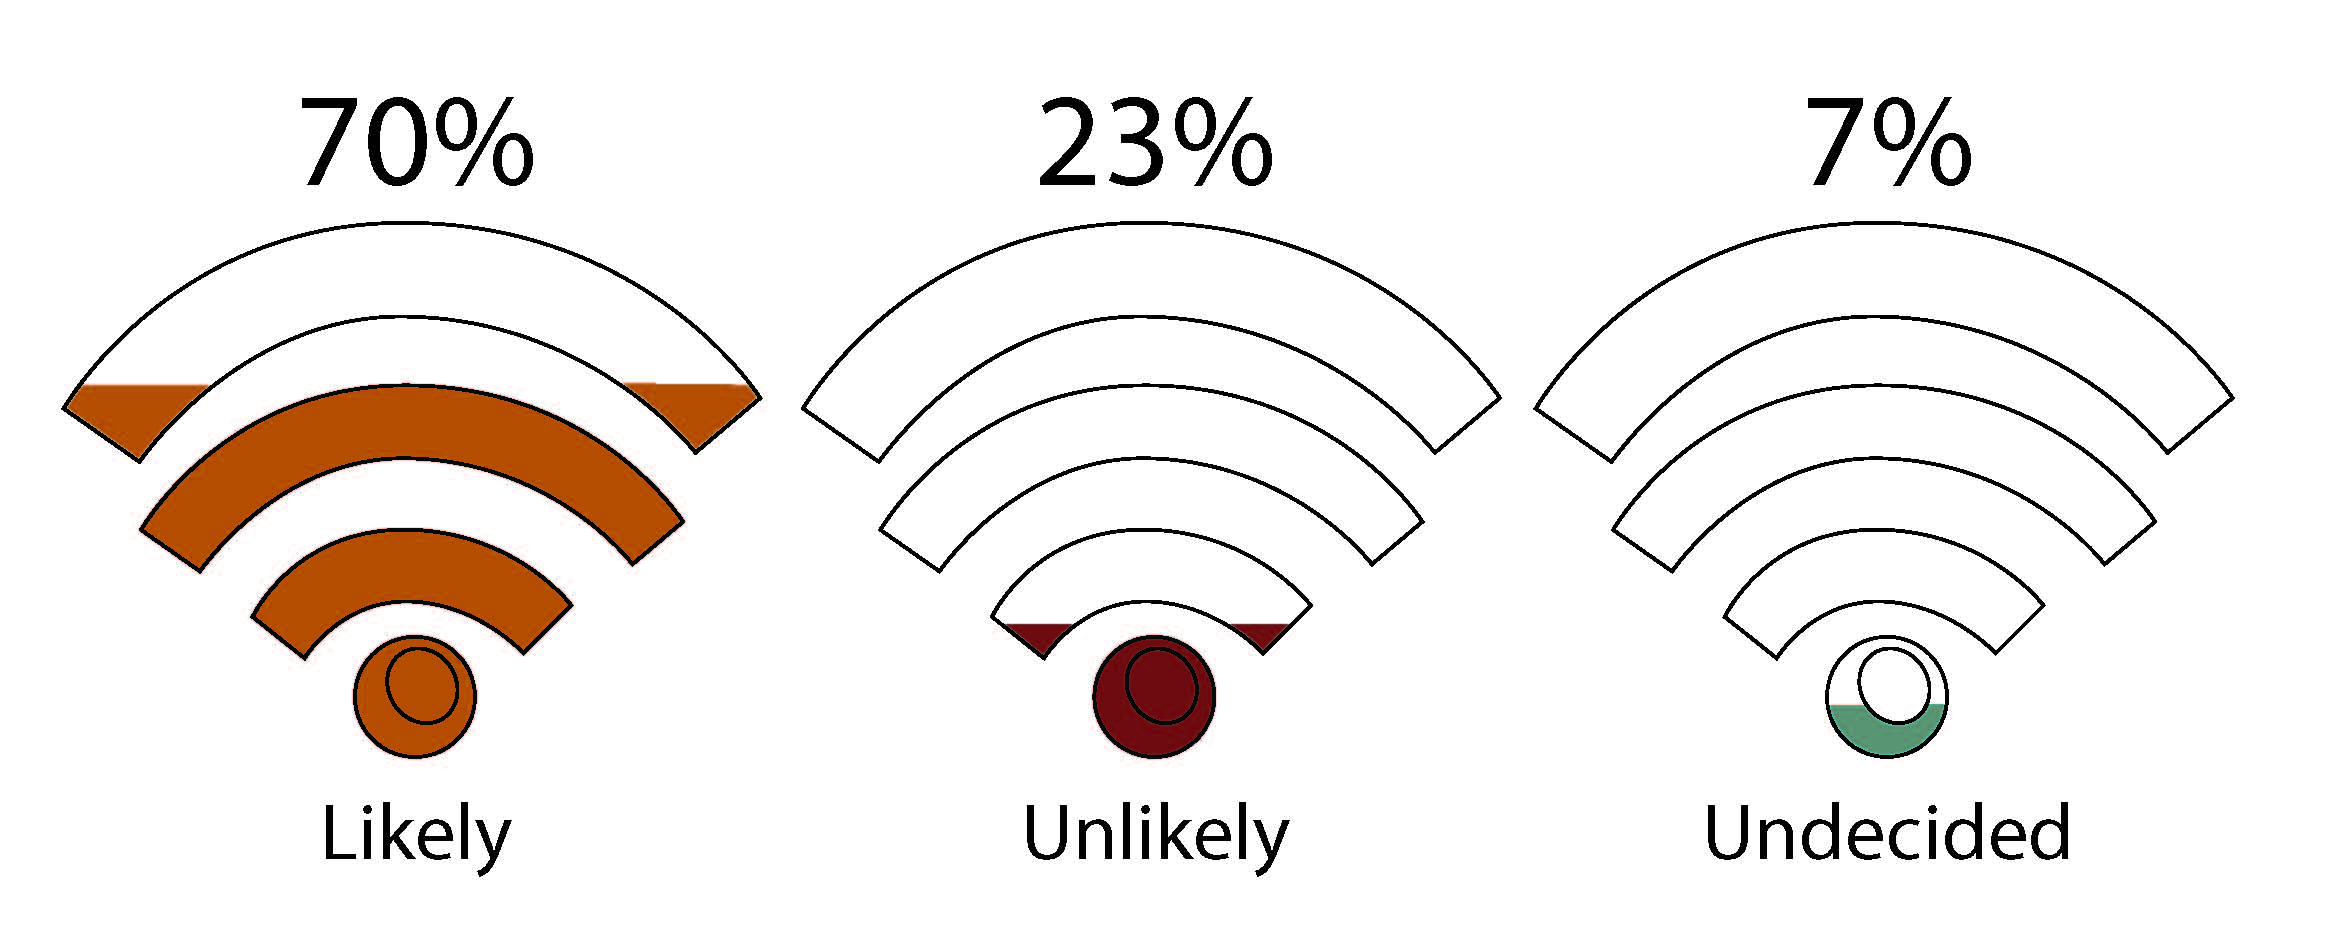 vdc research enterprise government mobility market blog surveys the vast majority of the dsd market is only now catching up to the significant advances seen in mobile and wireless technology